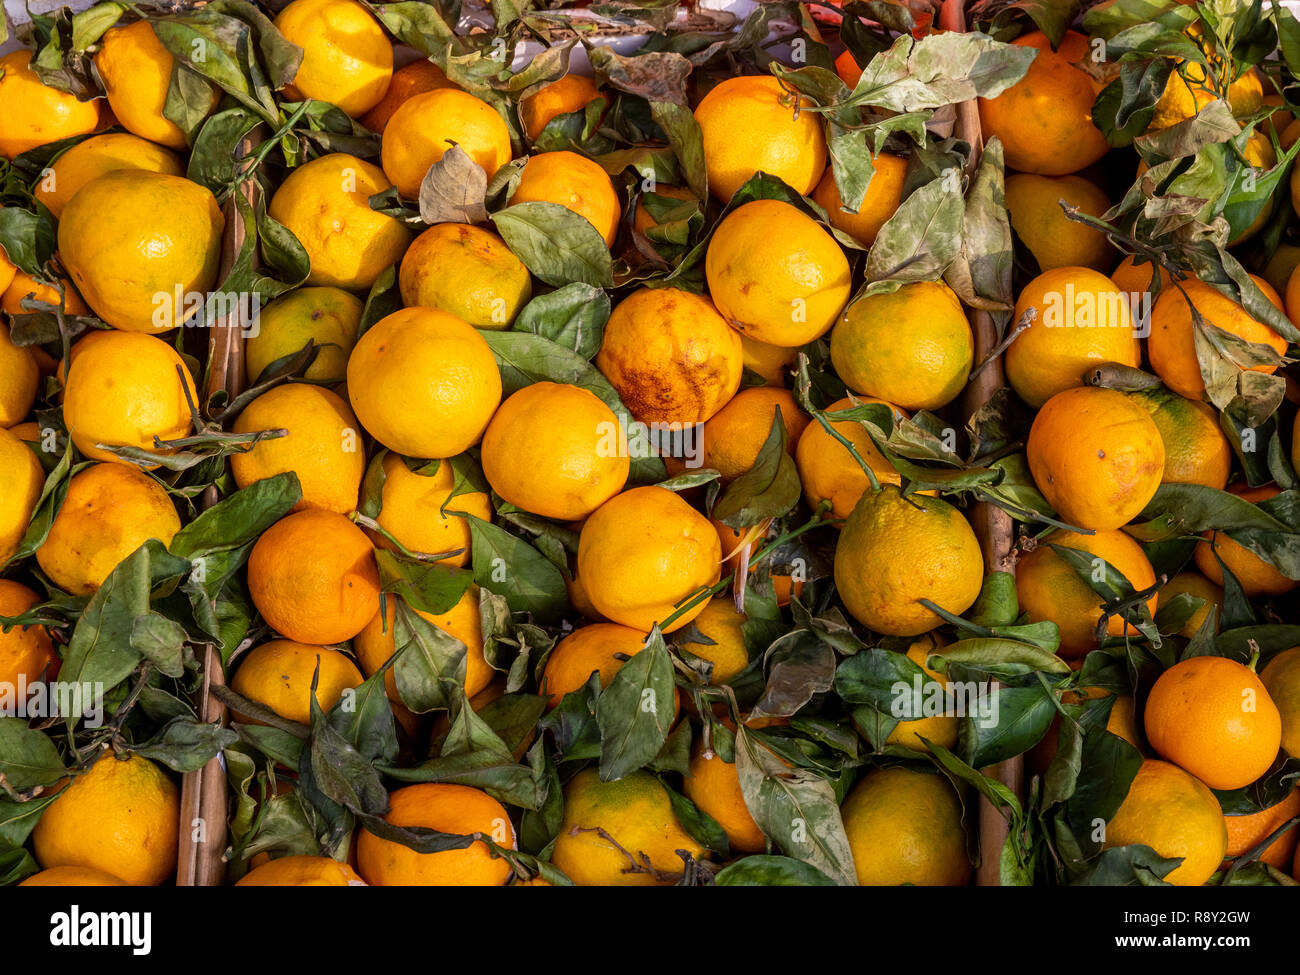 Oranges for sale, some bruised and over-ripe, at a market in San Francisco, California. - Stock Image